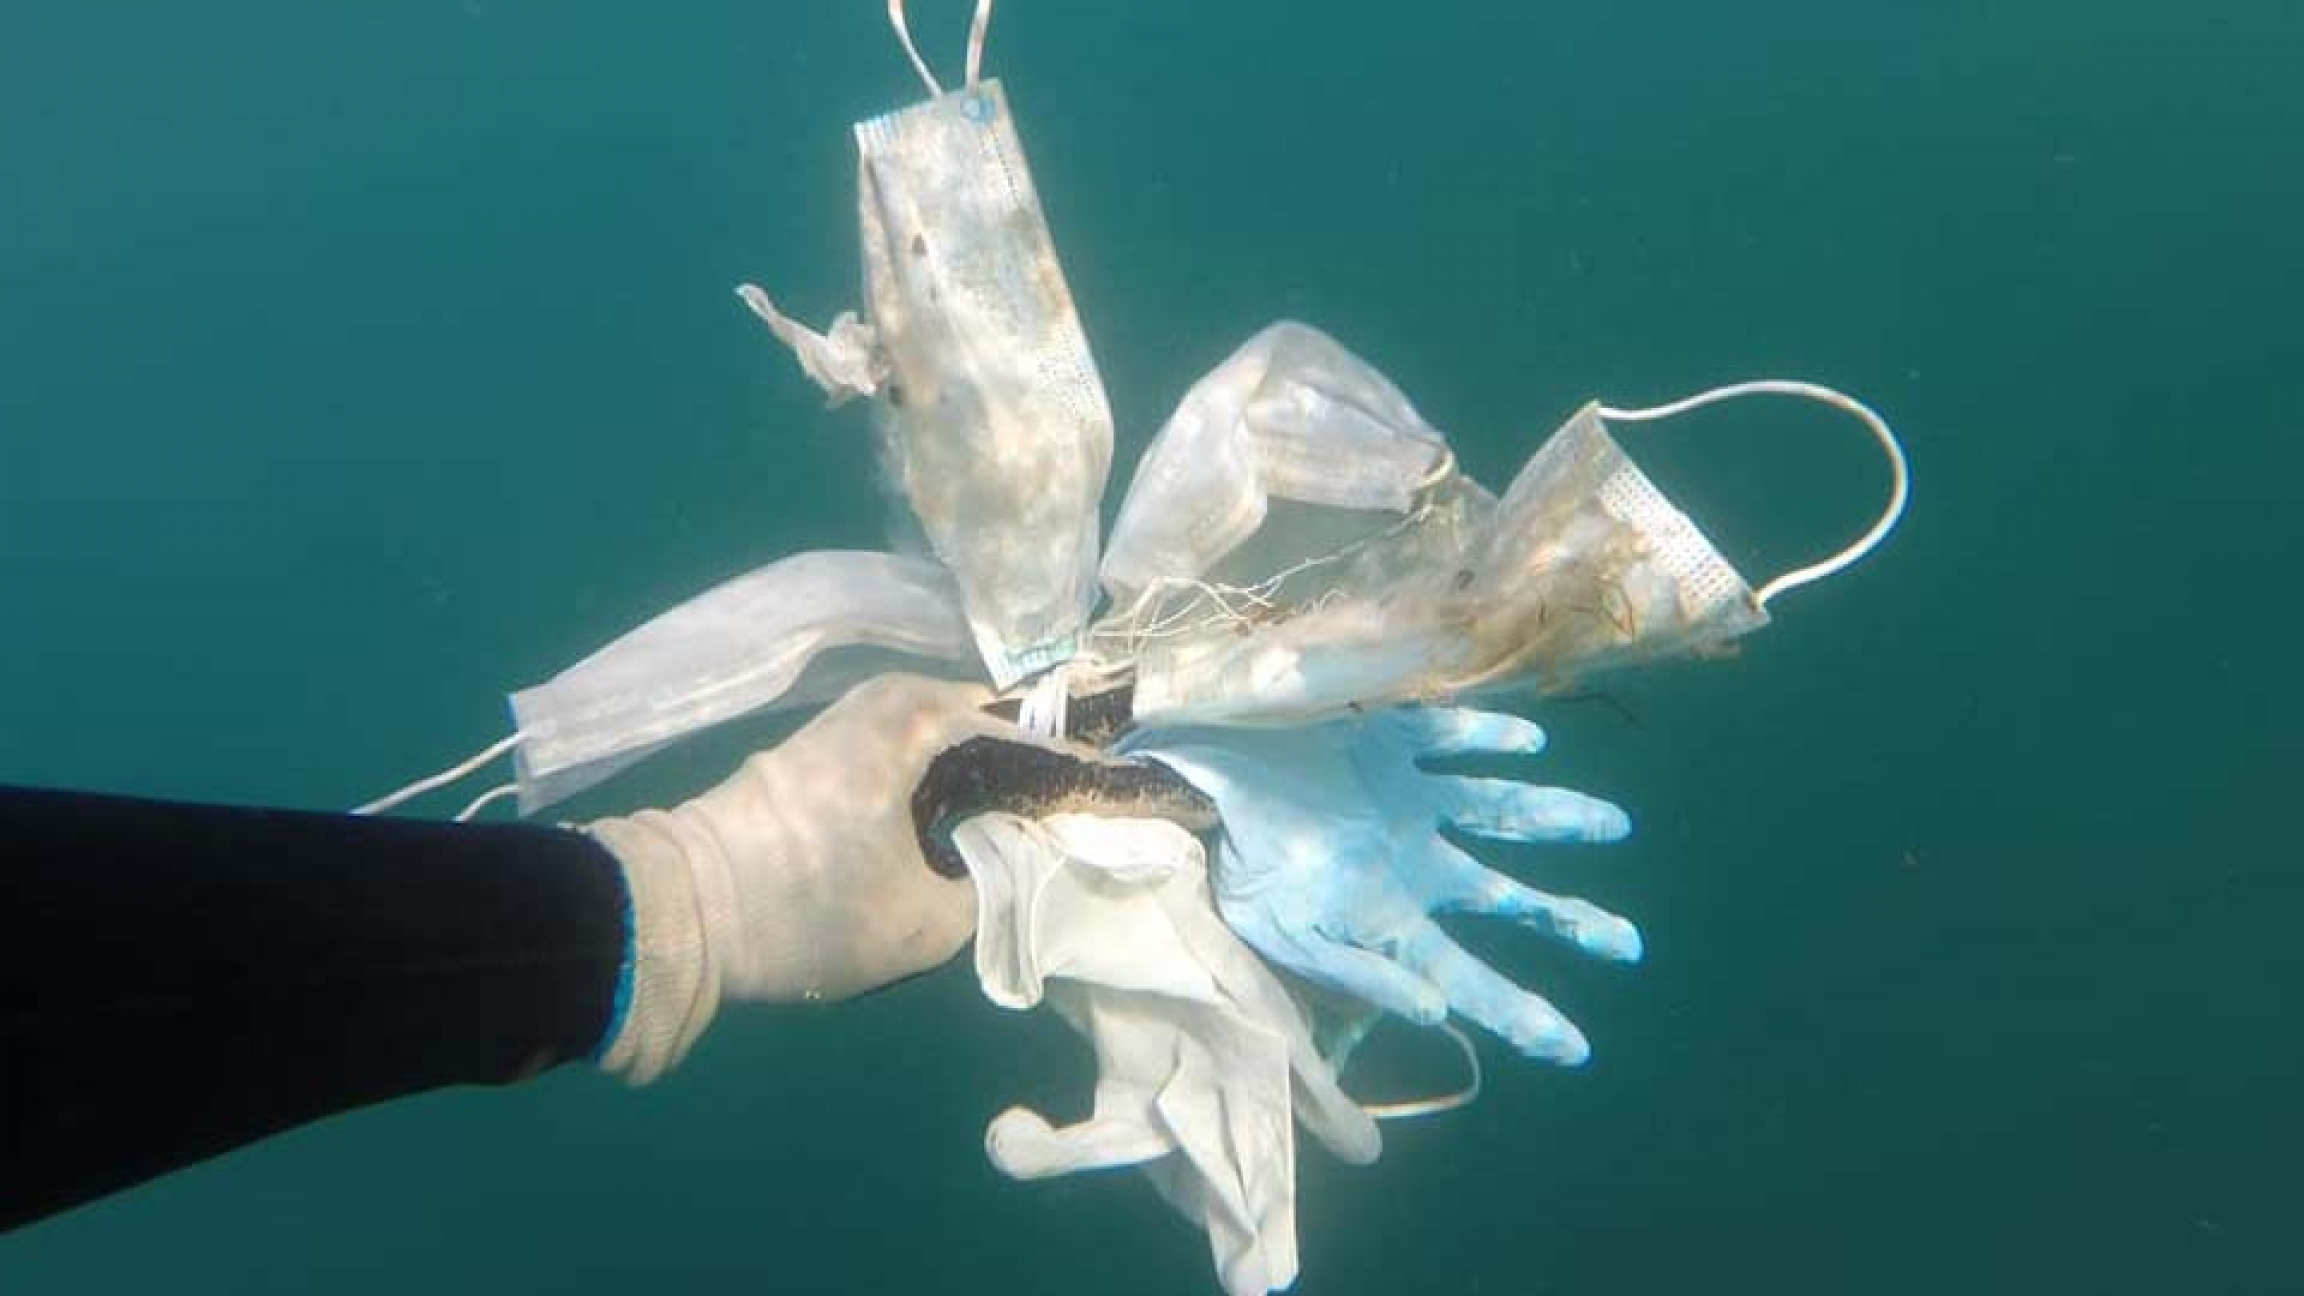 Masks and gloves found in the Mediterranean Sea by members of Opération Mer Propre, or Operation Clean Sea, in mid-May, just after France lifted some of its coronavirus lockdown restrictions.